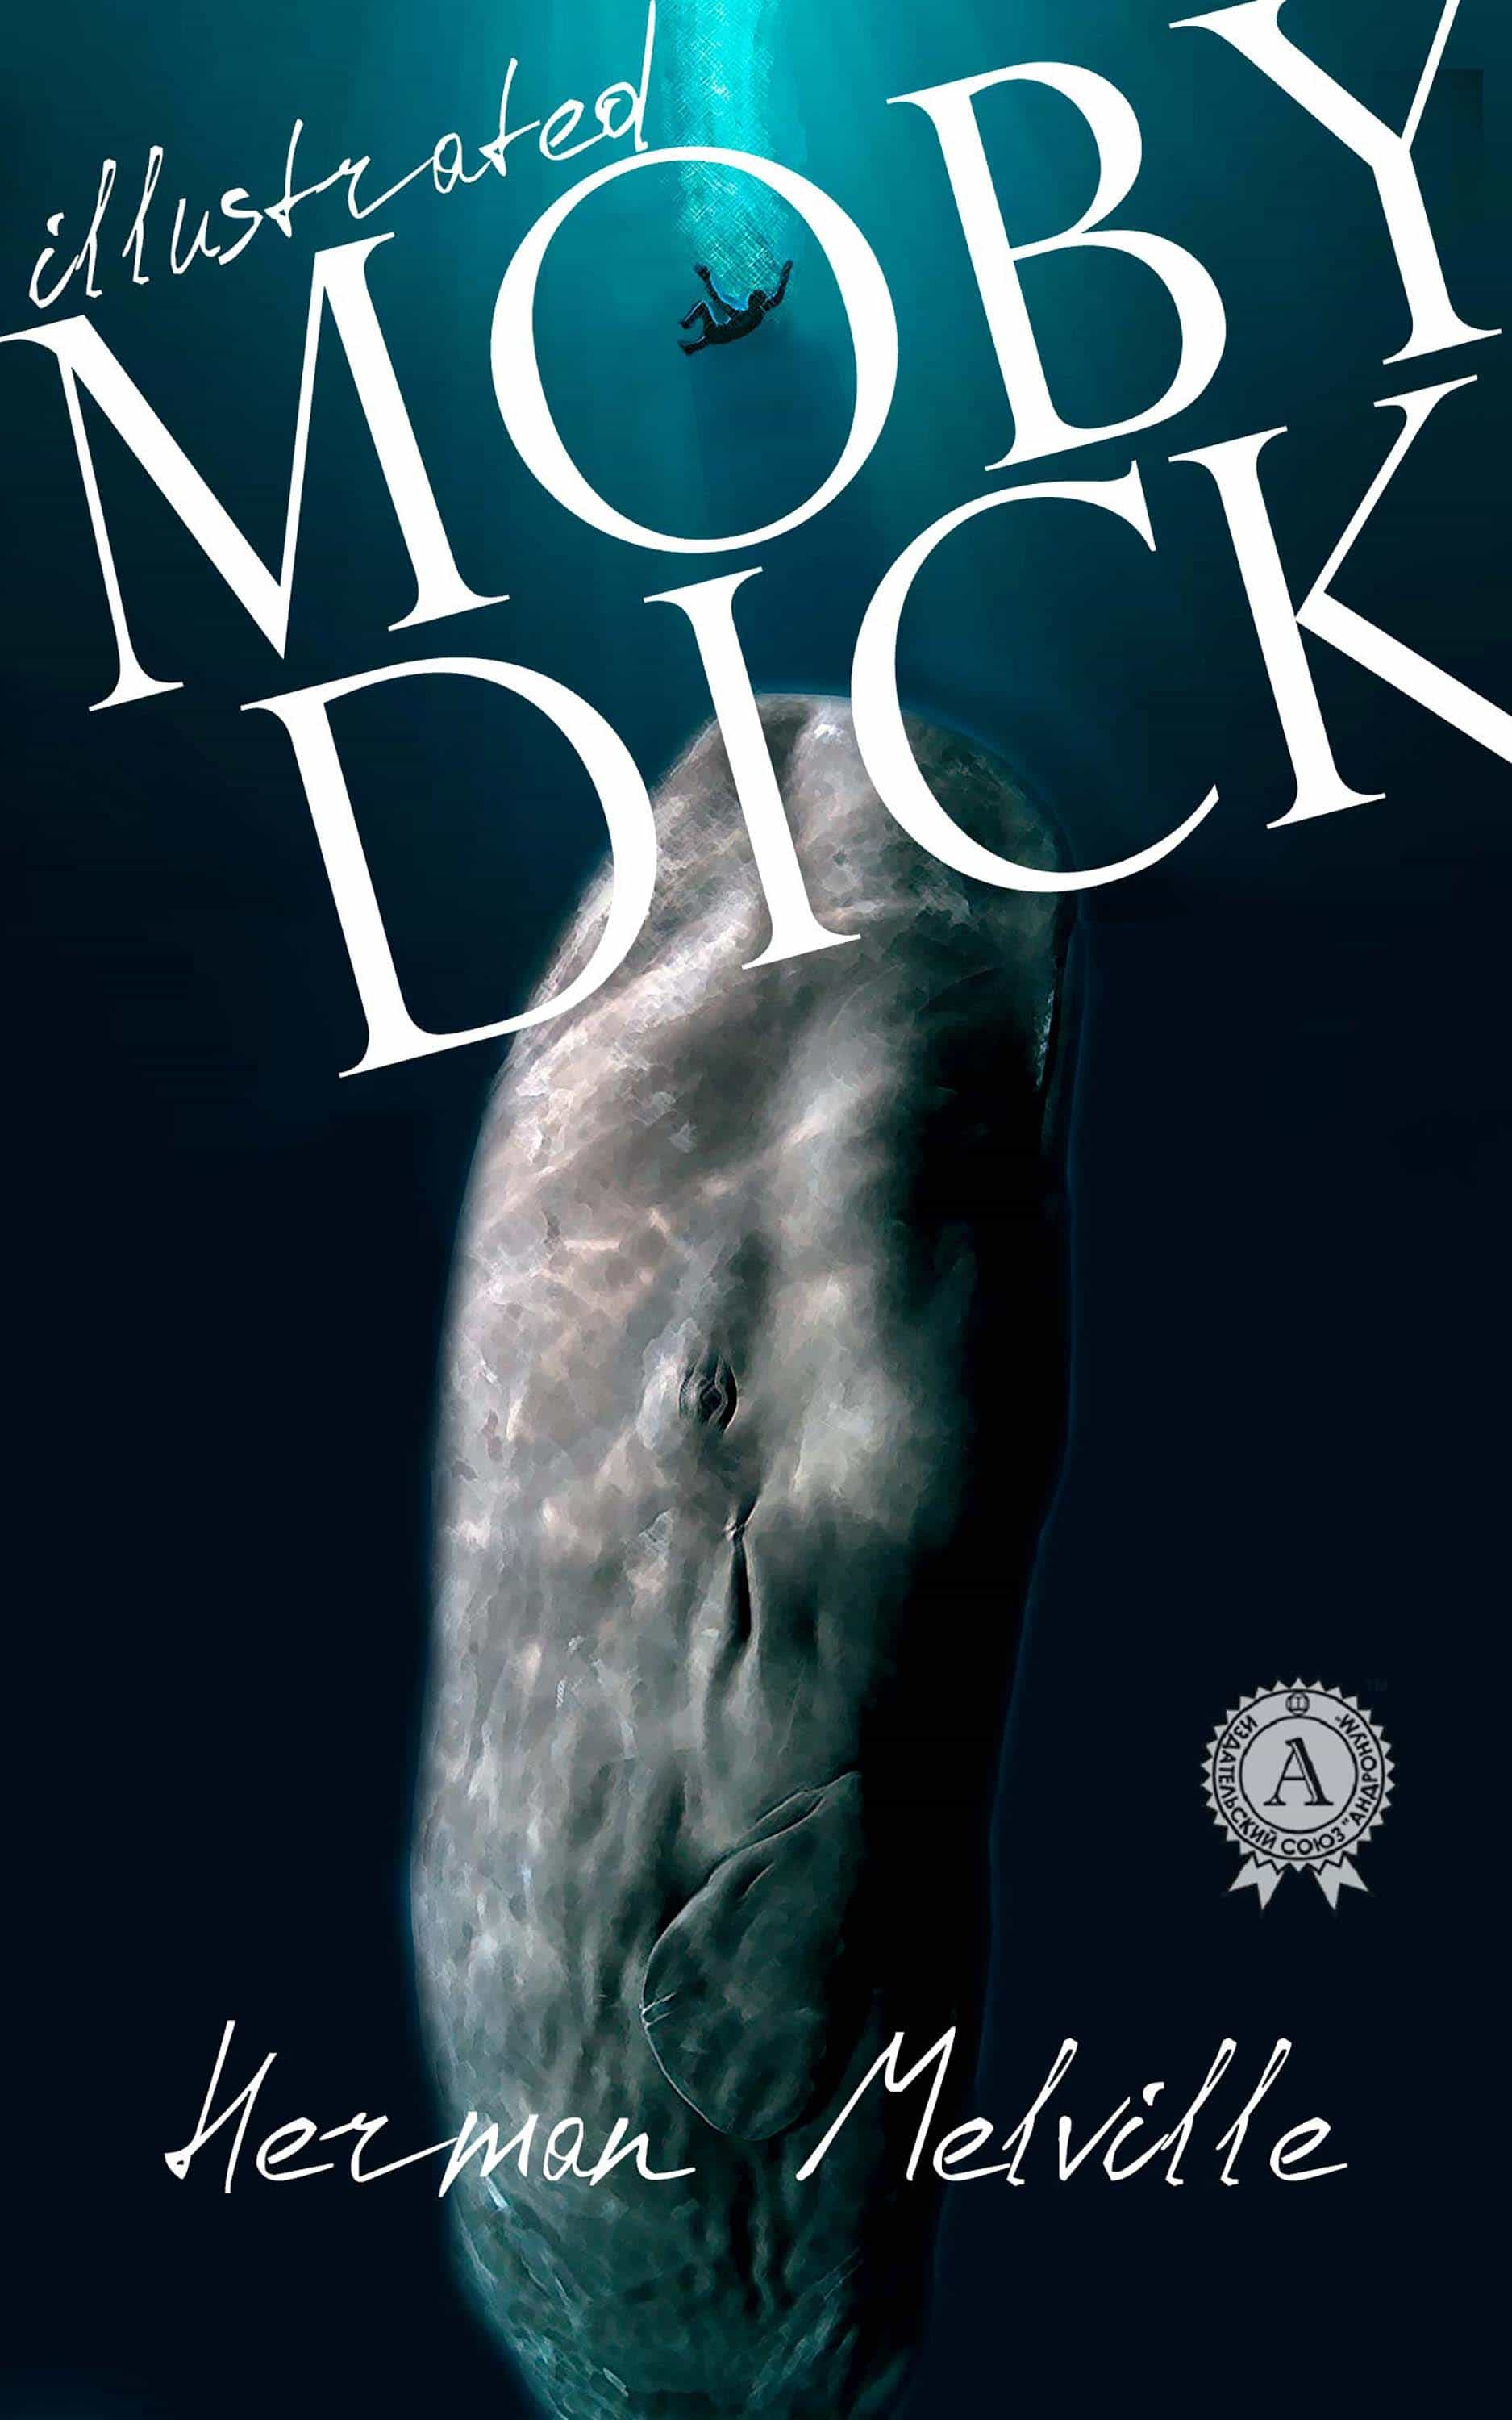 Moby dick story pdf